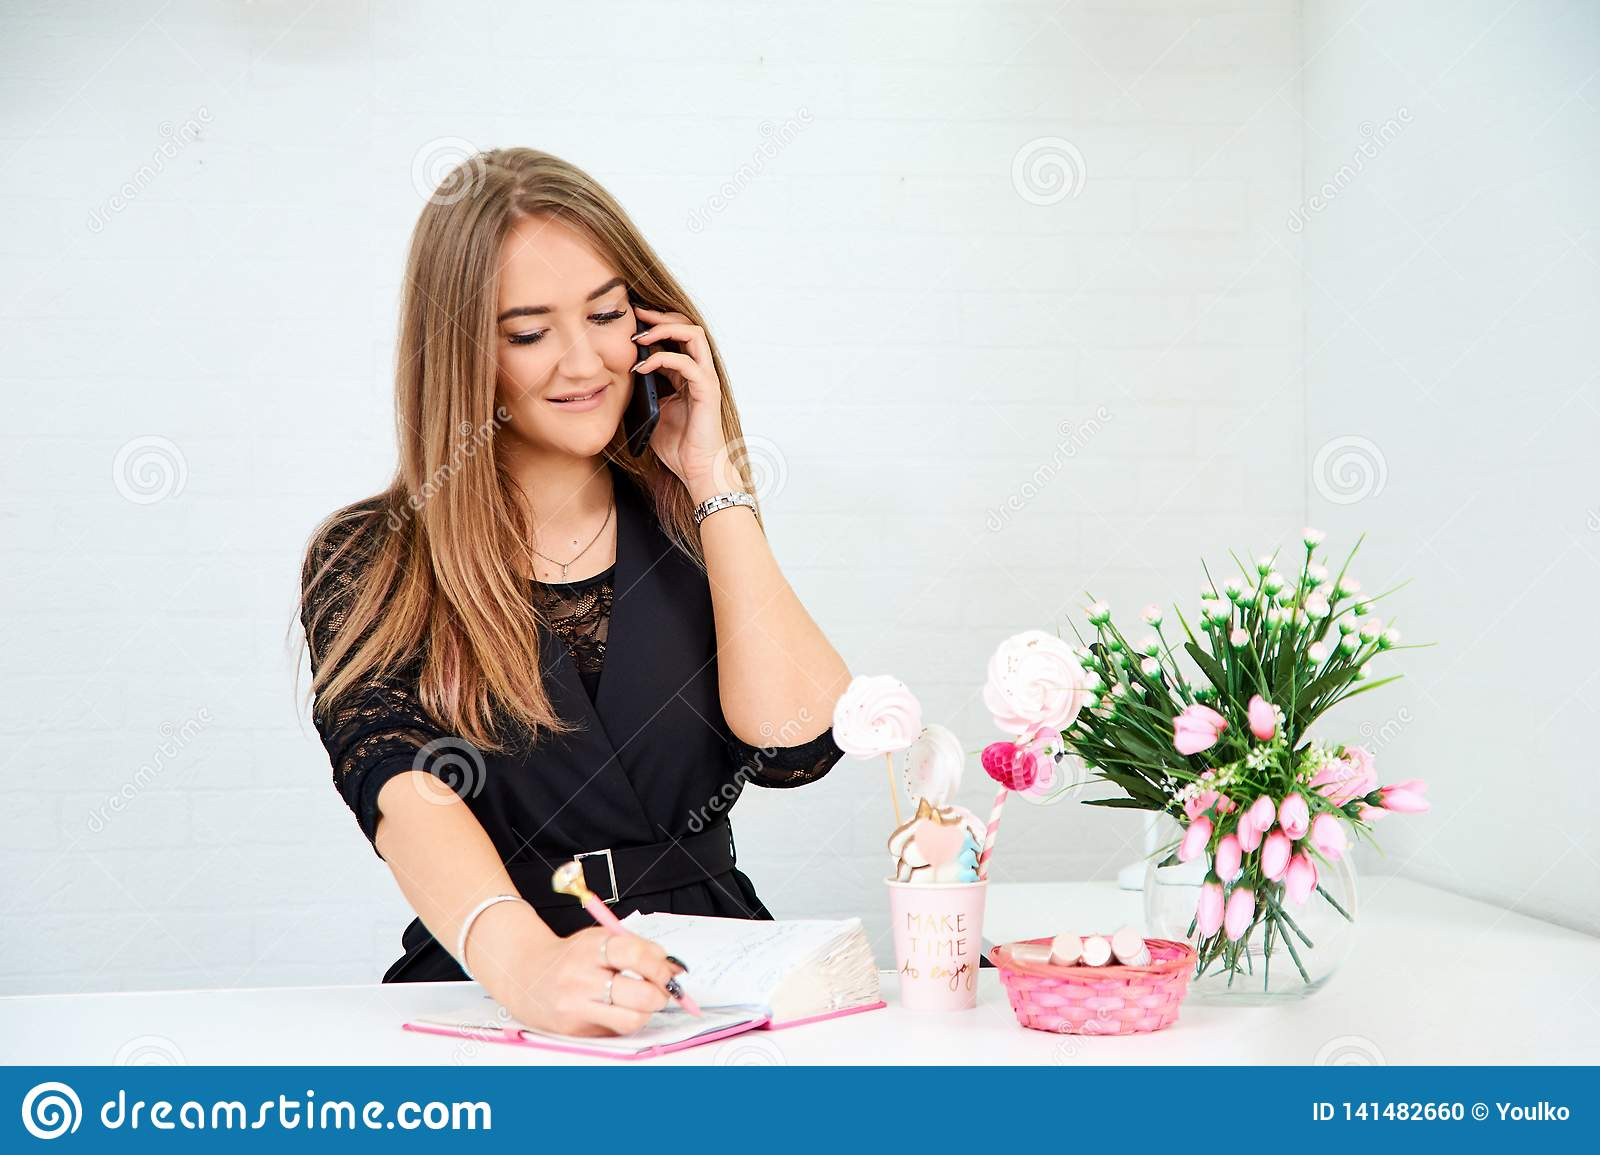 beautiful European girl takes a call on the phone and writes in a notebook on a white background. Nearby are flowers and